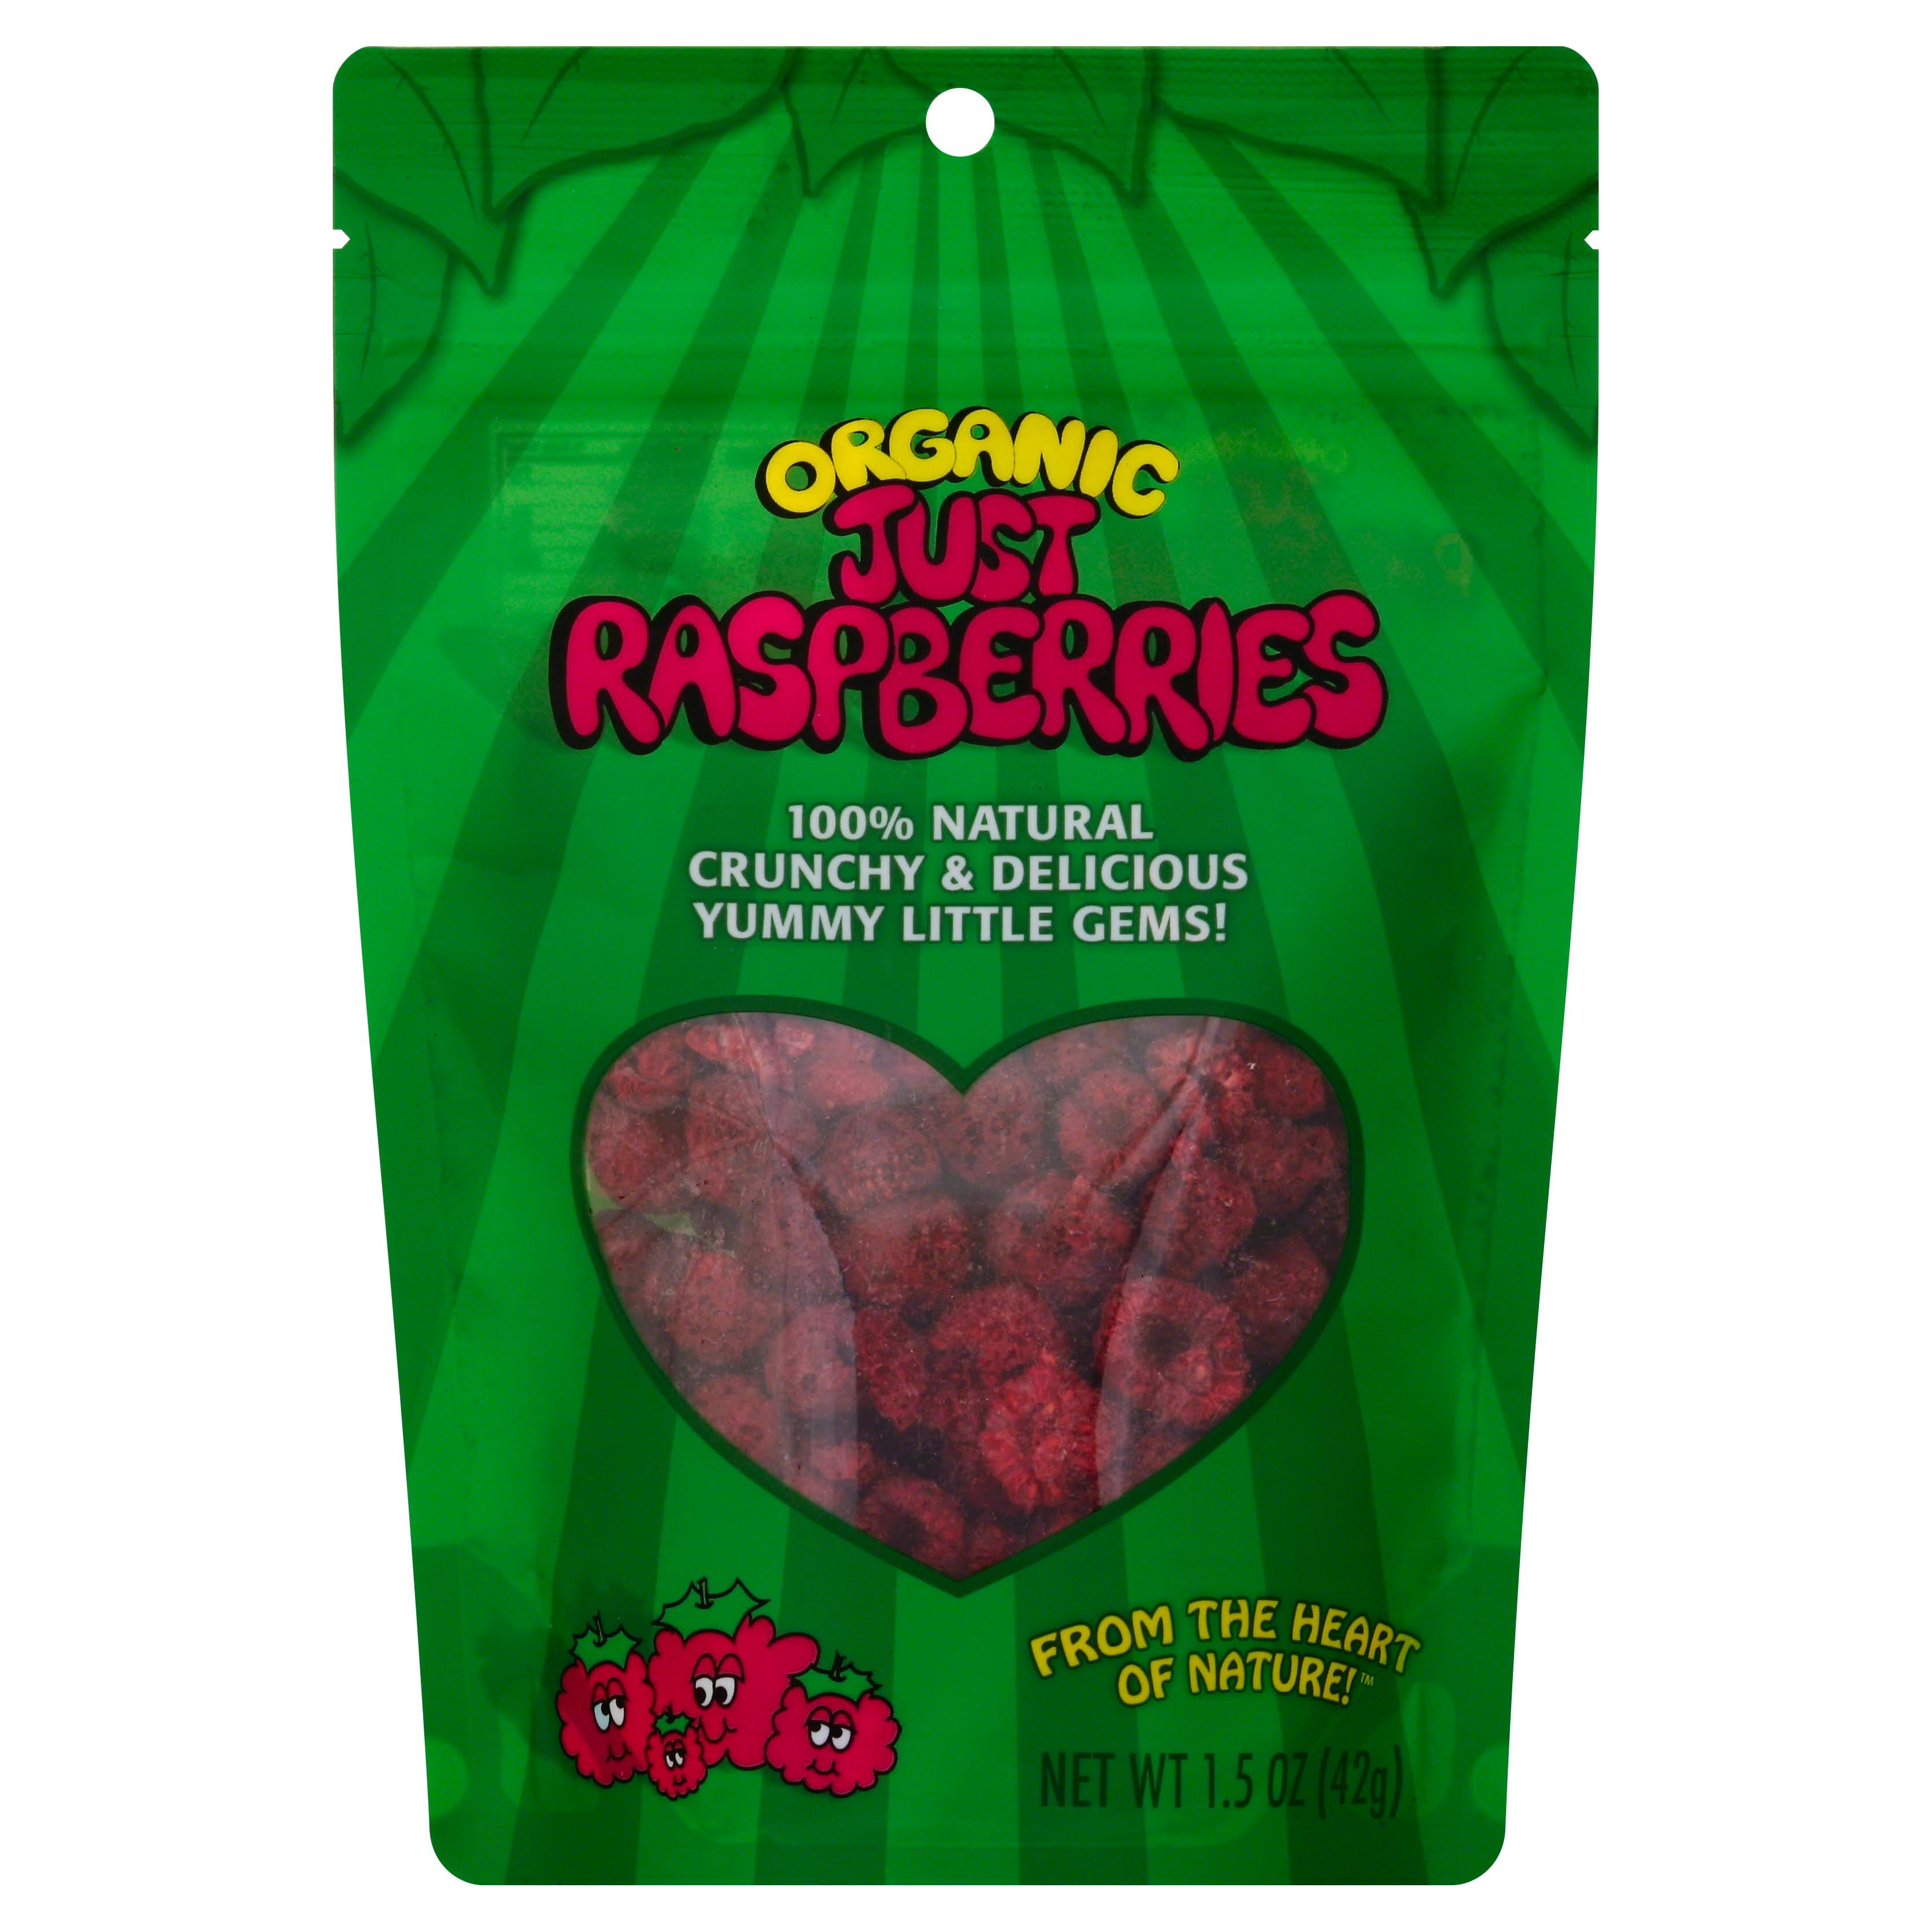 Organic Just Raspberries - 1.5 oz bag